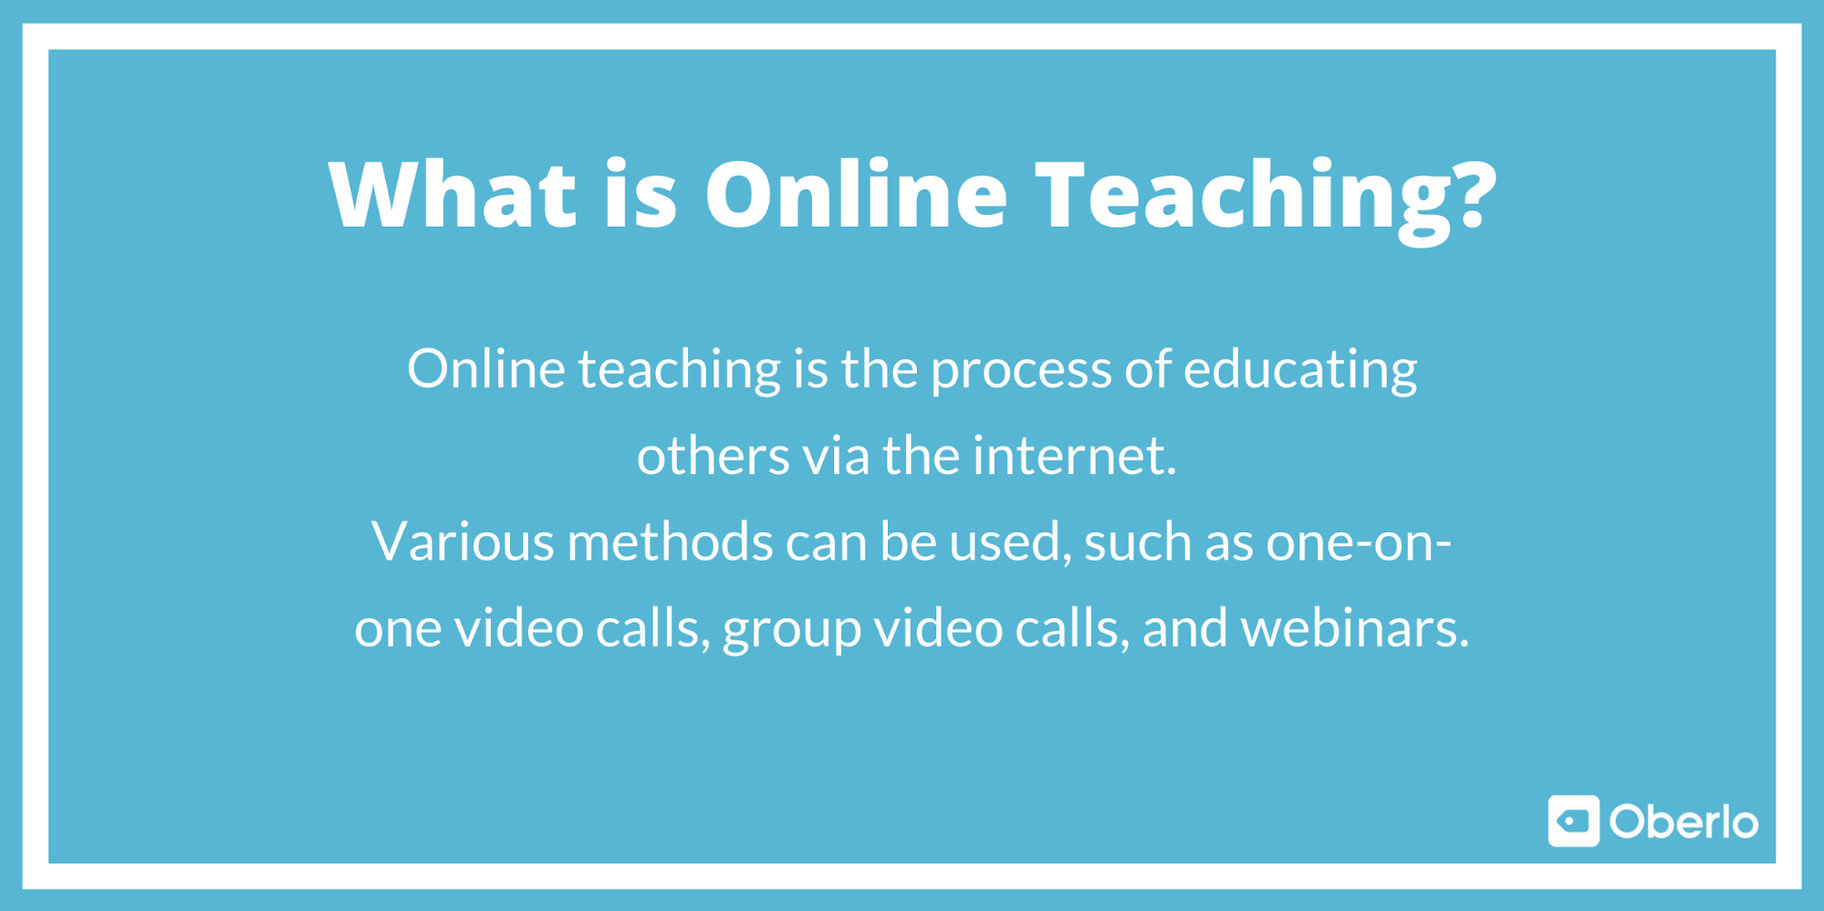 What is Online Teaching?